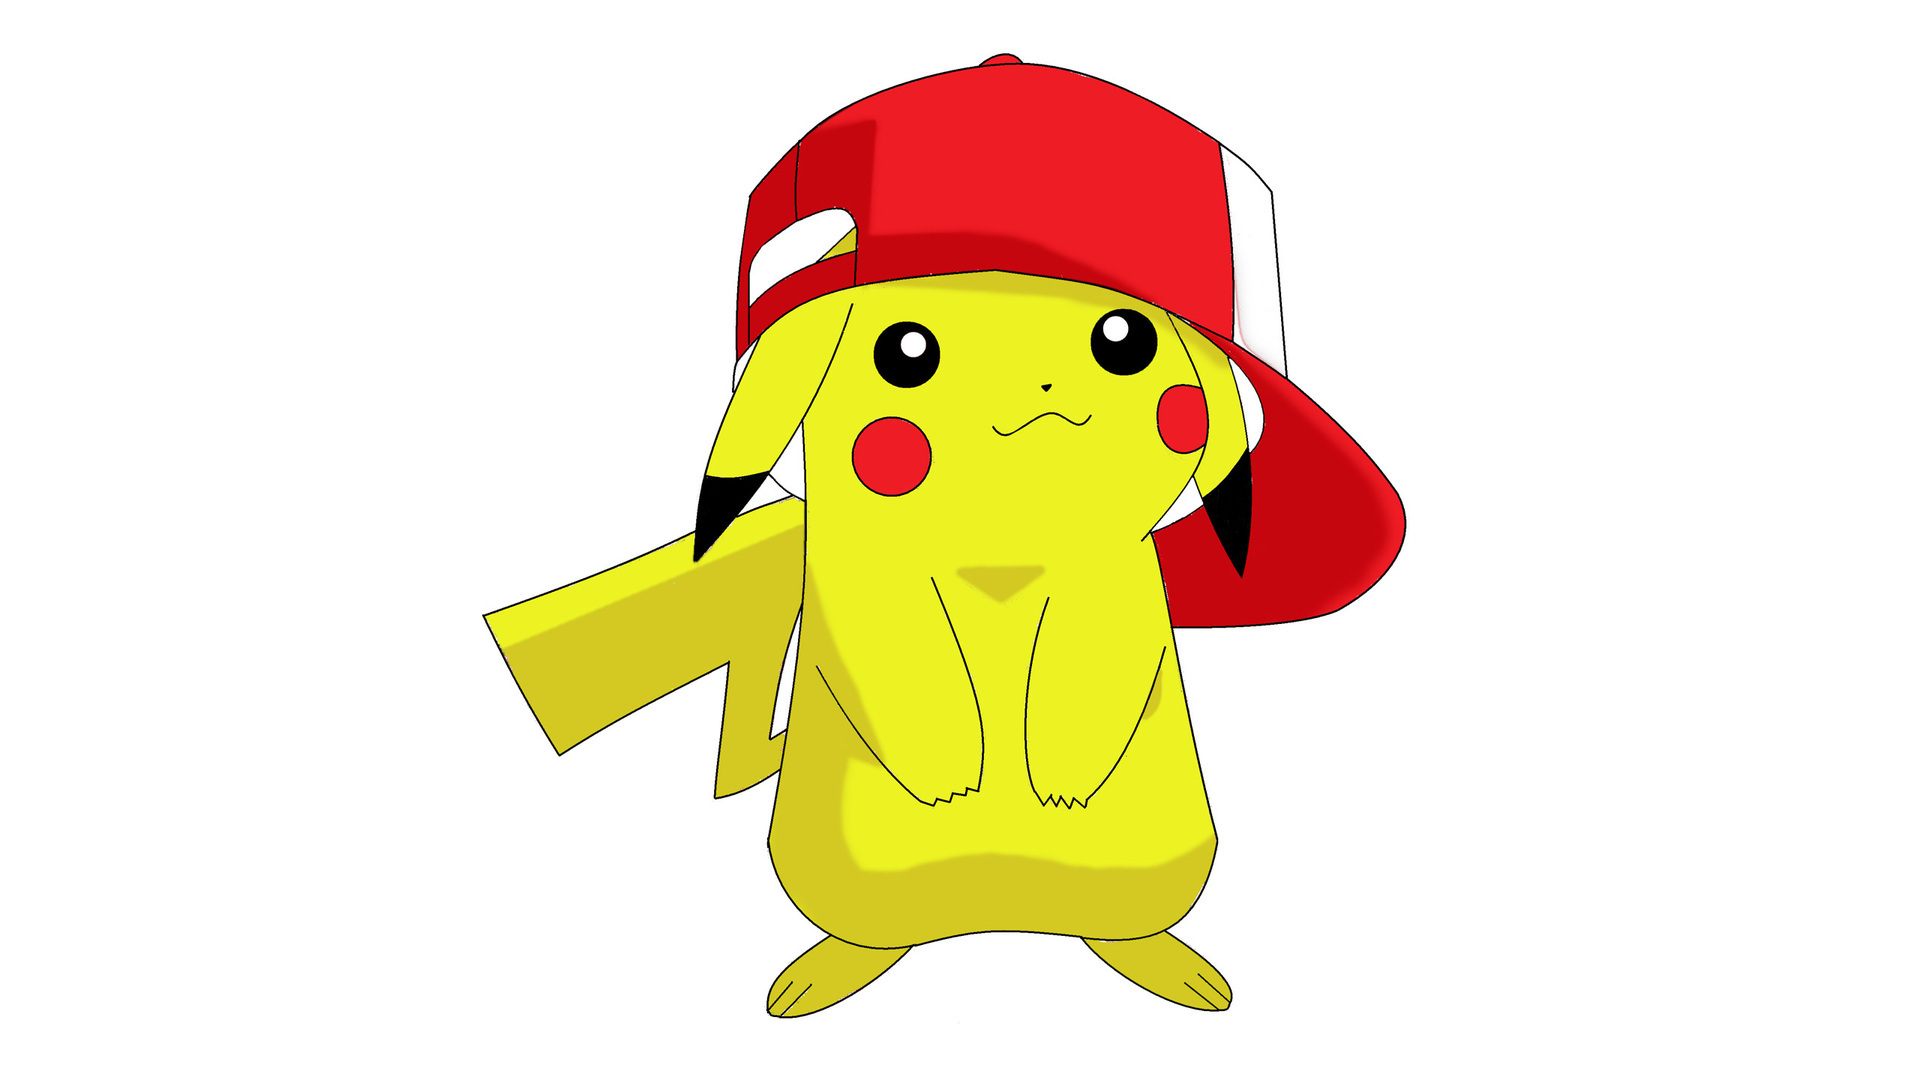 Video Game - Pokémon Pikachu Wallpaper - Pokemon HD PNG